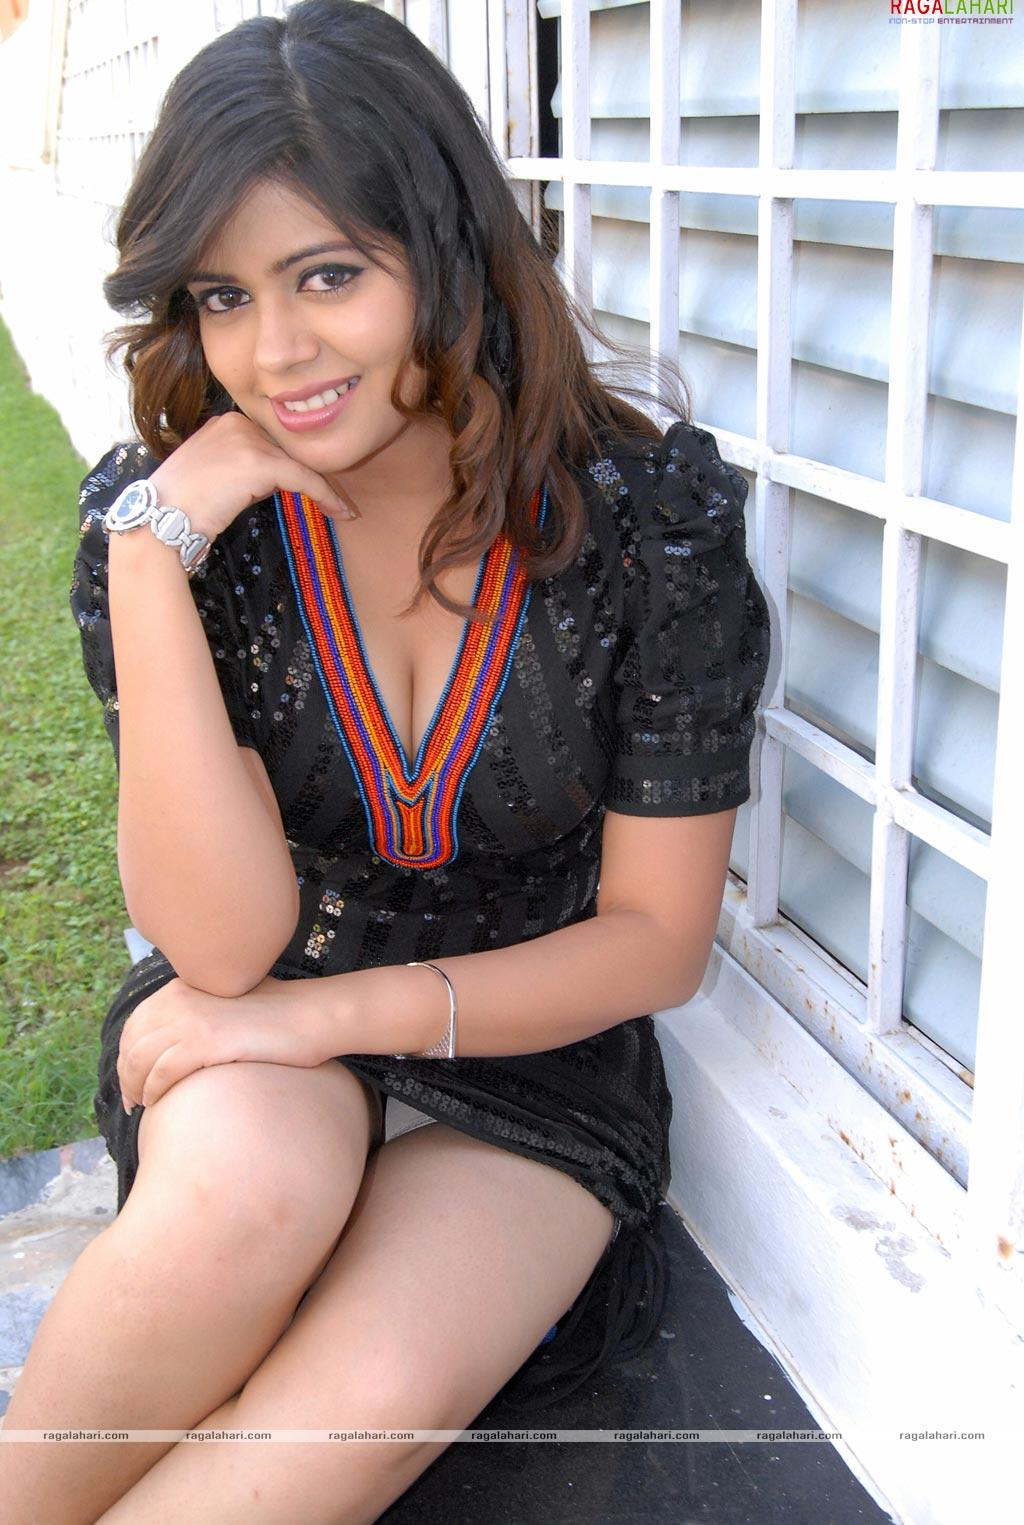 Hot Images Of Indian Actresses